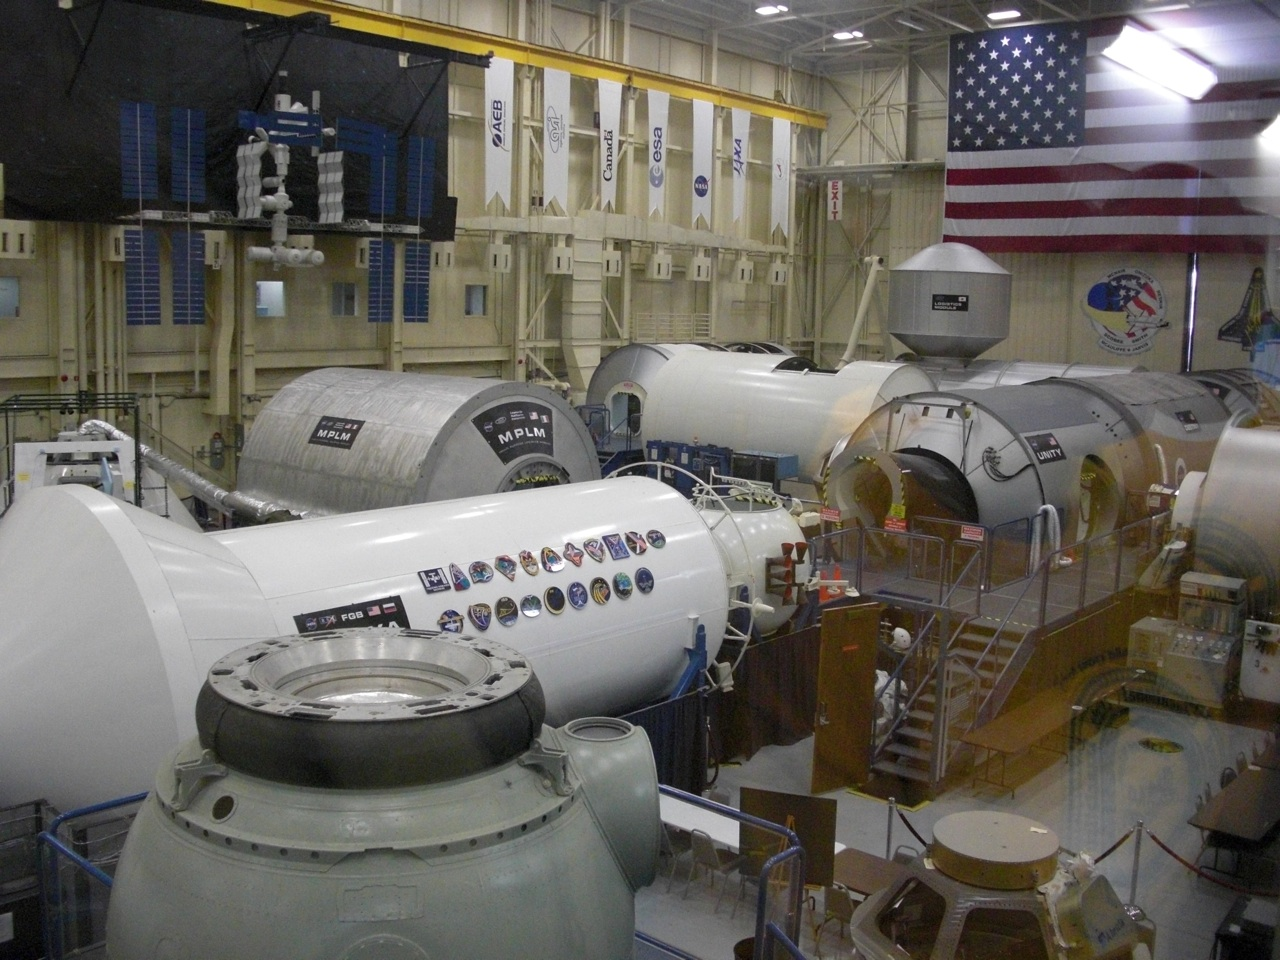 NASA Training Facility. These Are Actual Pods That the Astronauts Train In.